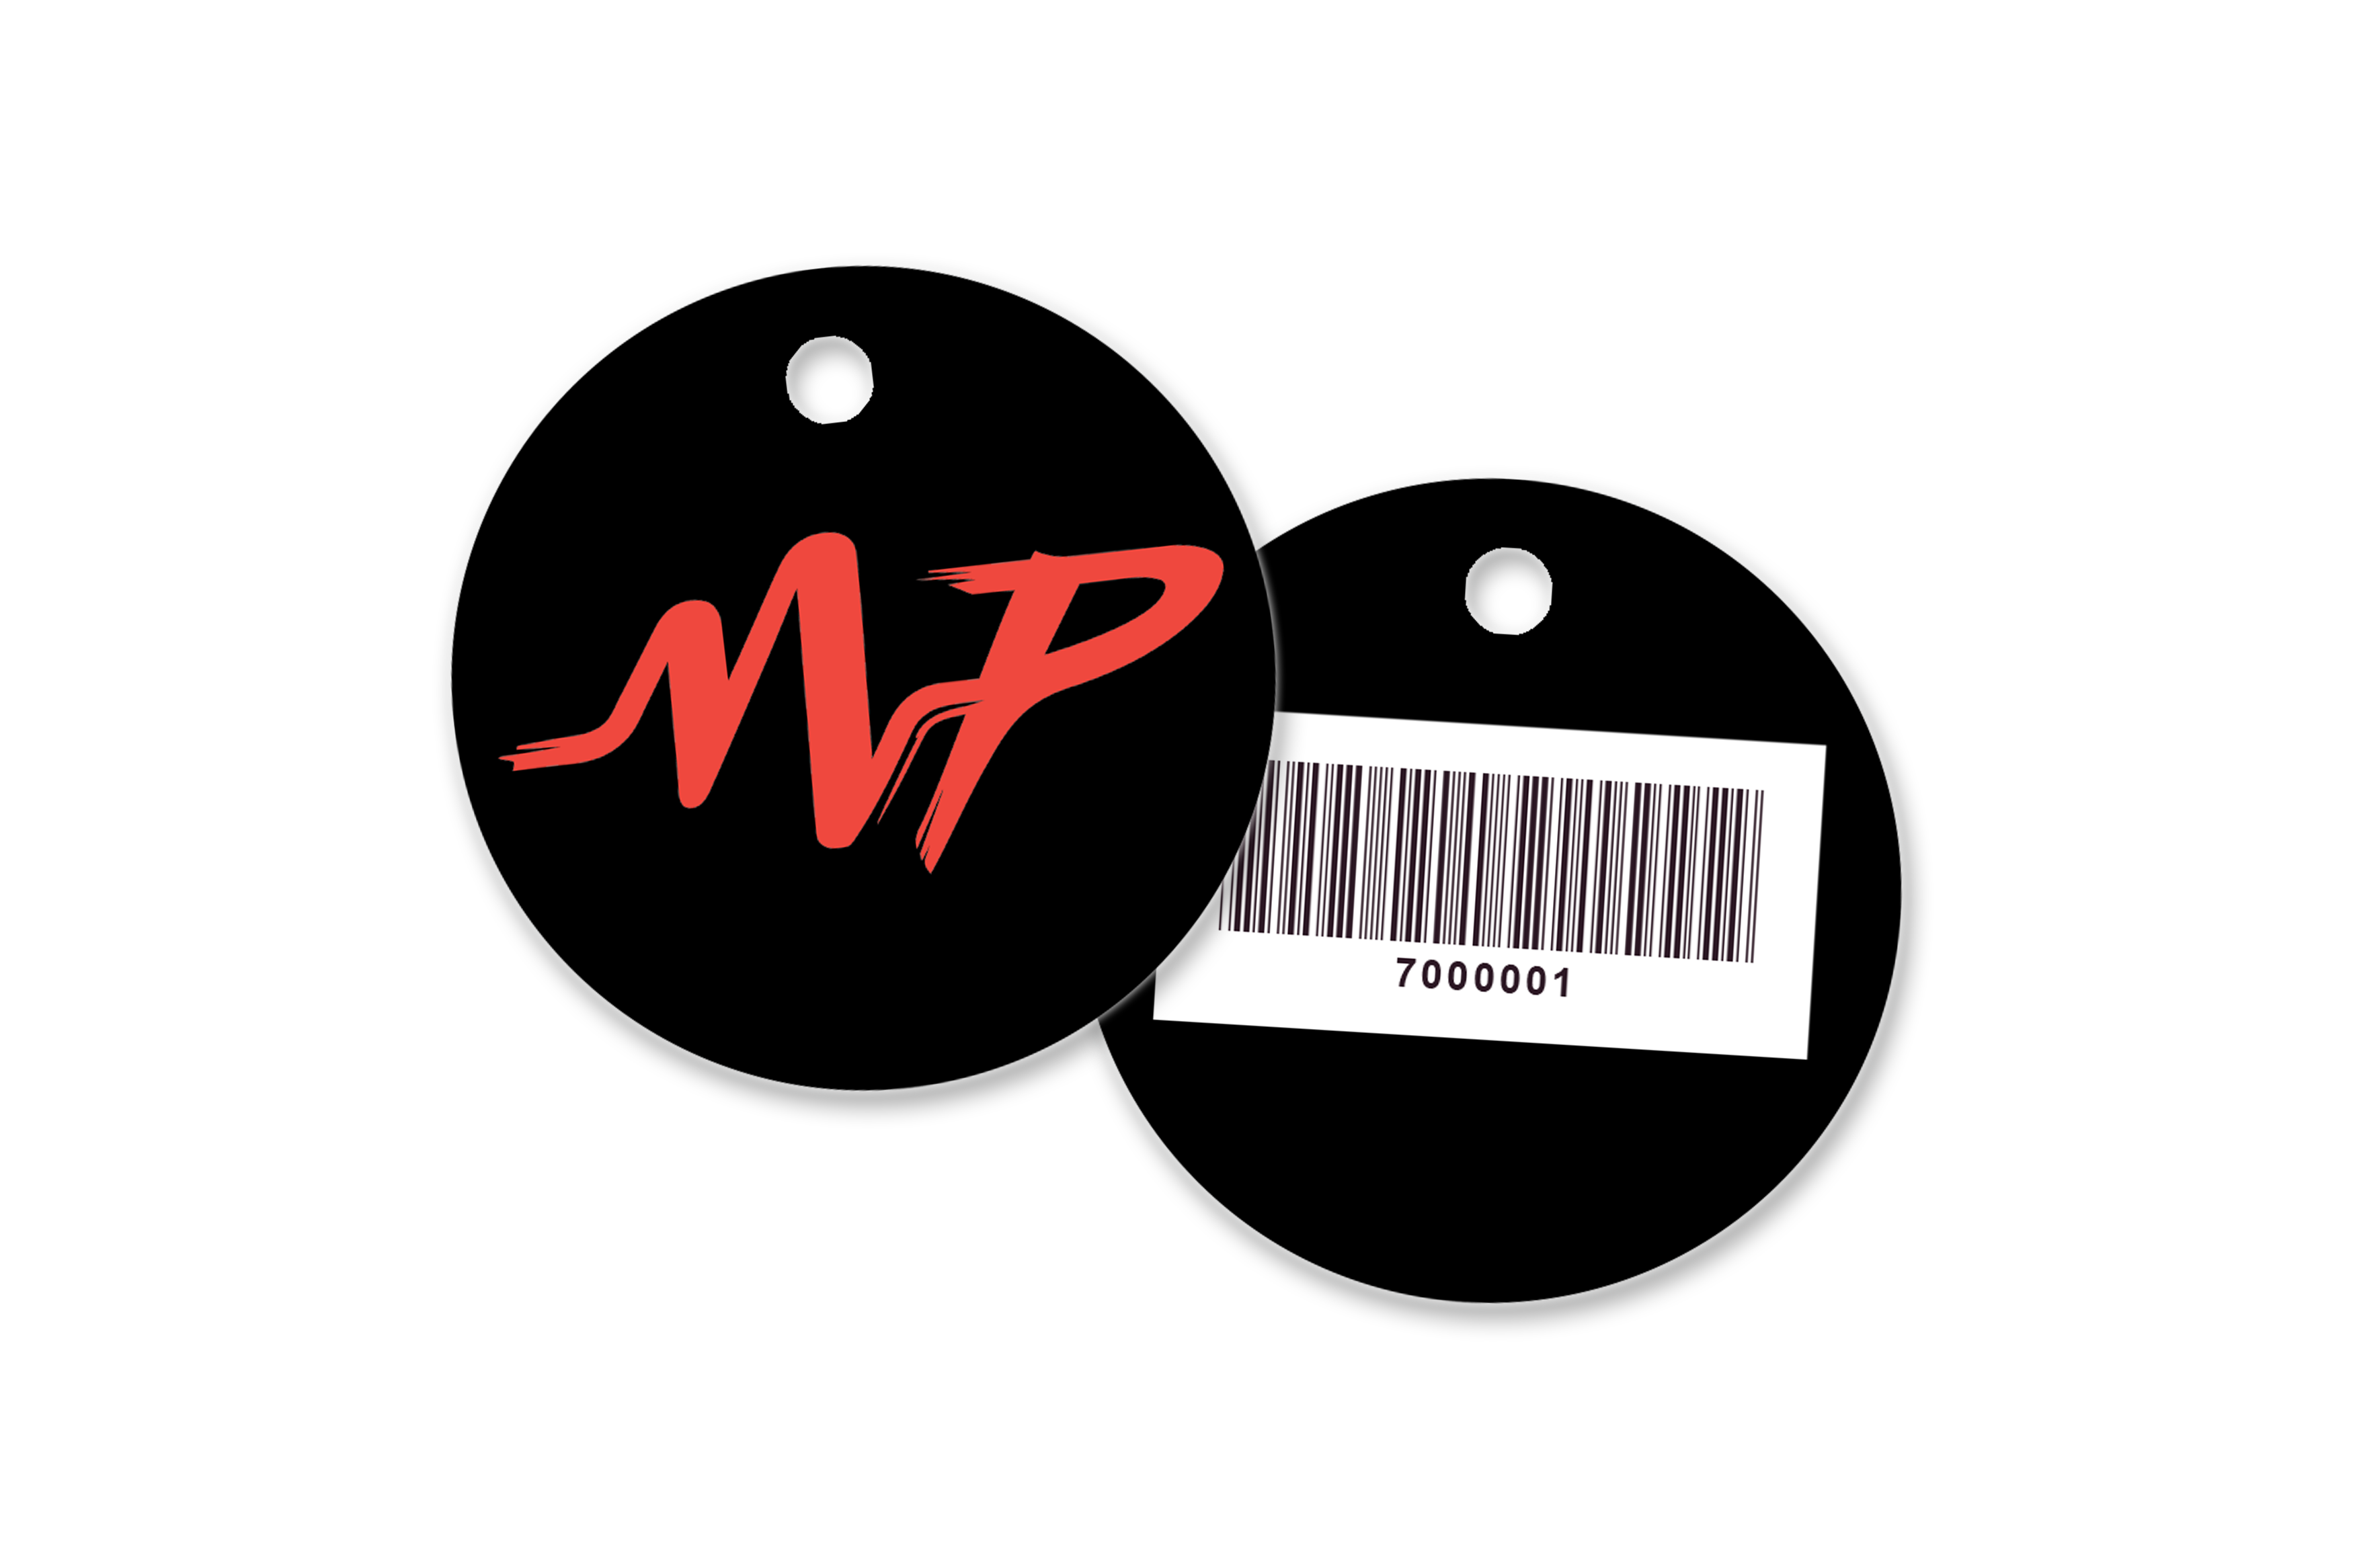 Round key tags with a barcode